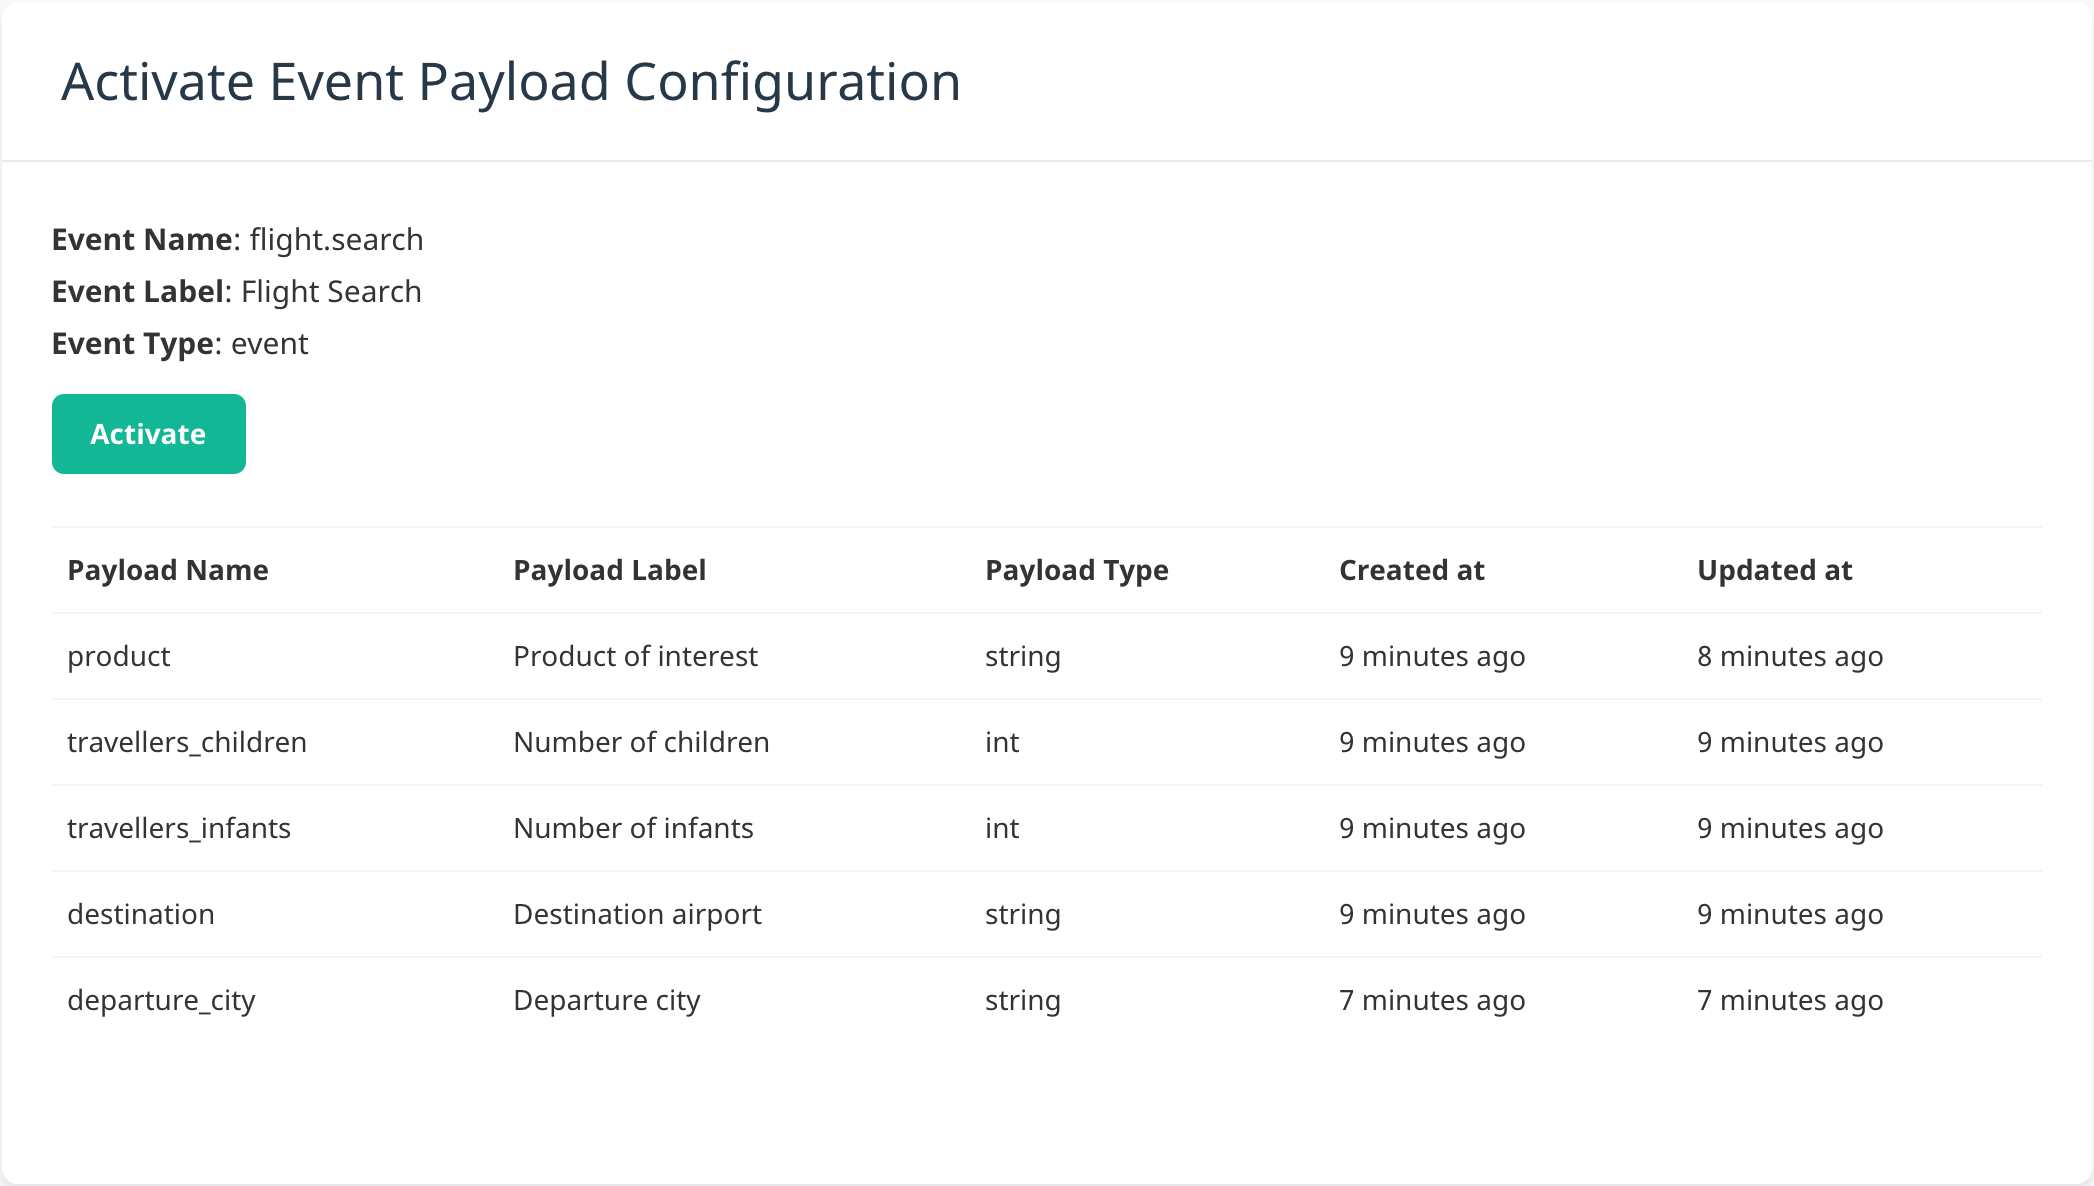 Activate event payload configuration